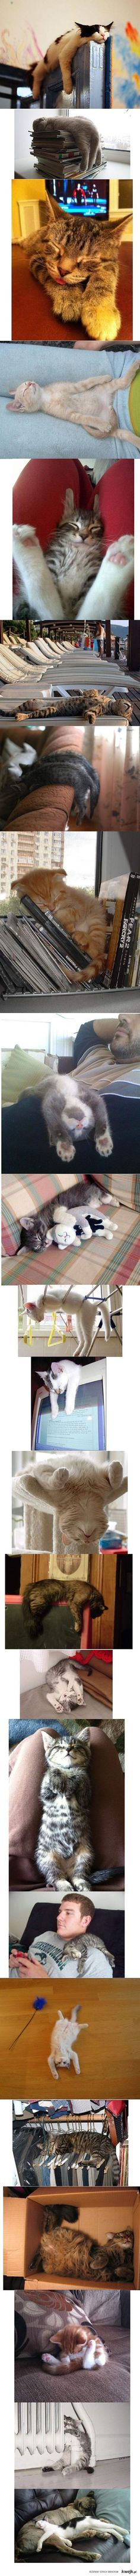 I Heard You Like Cats | CuteStuff.co - Cute Animals, Cute Pictures, Cute Videos and MORE!